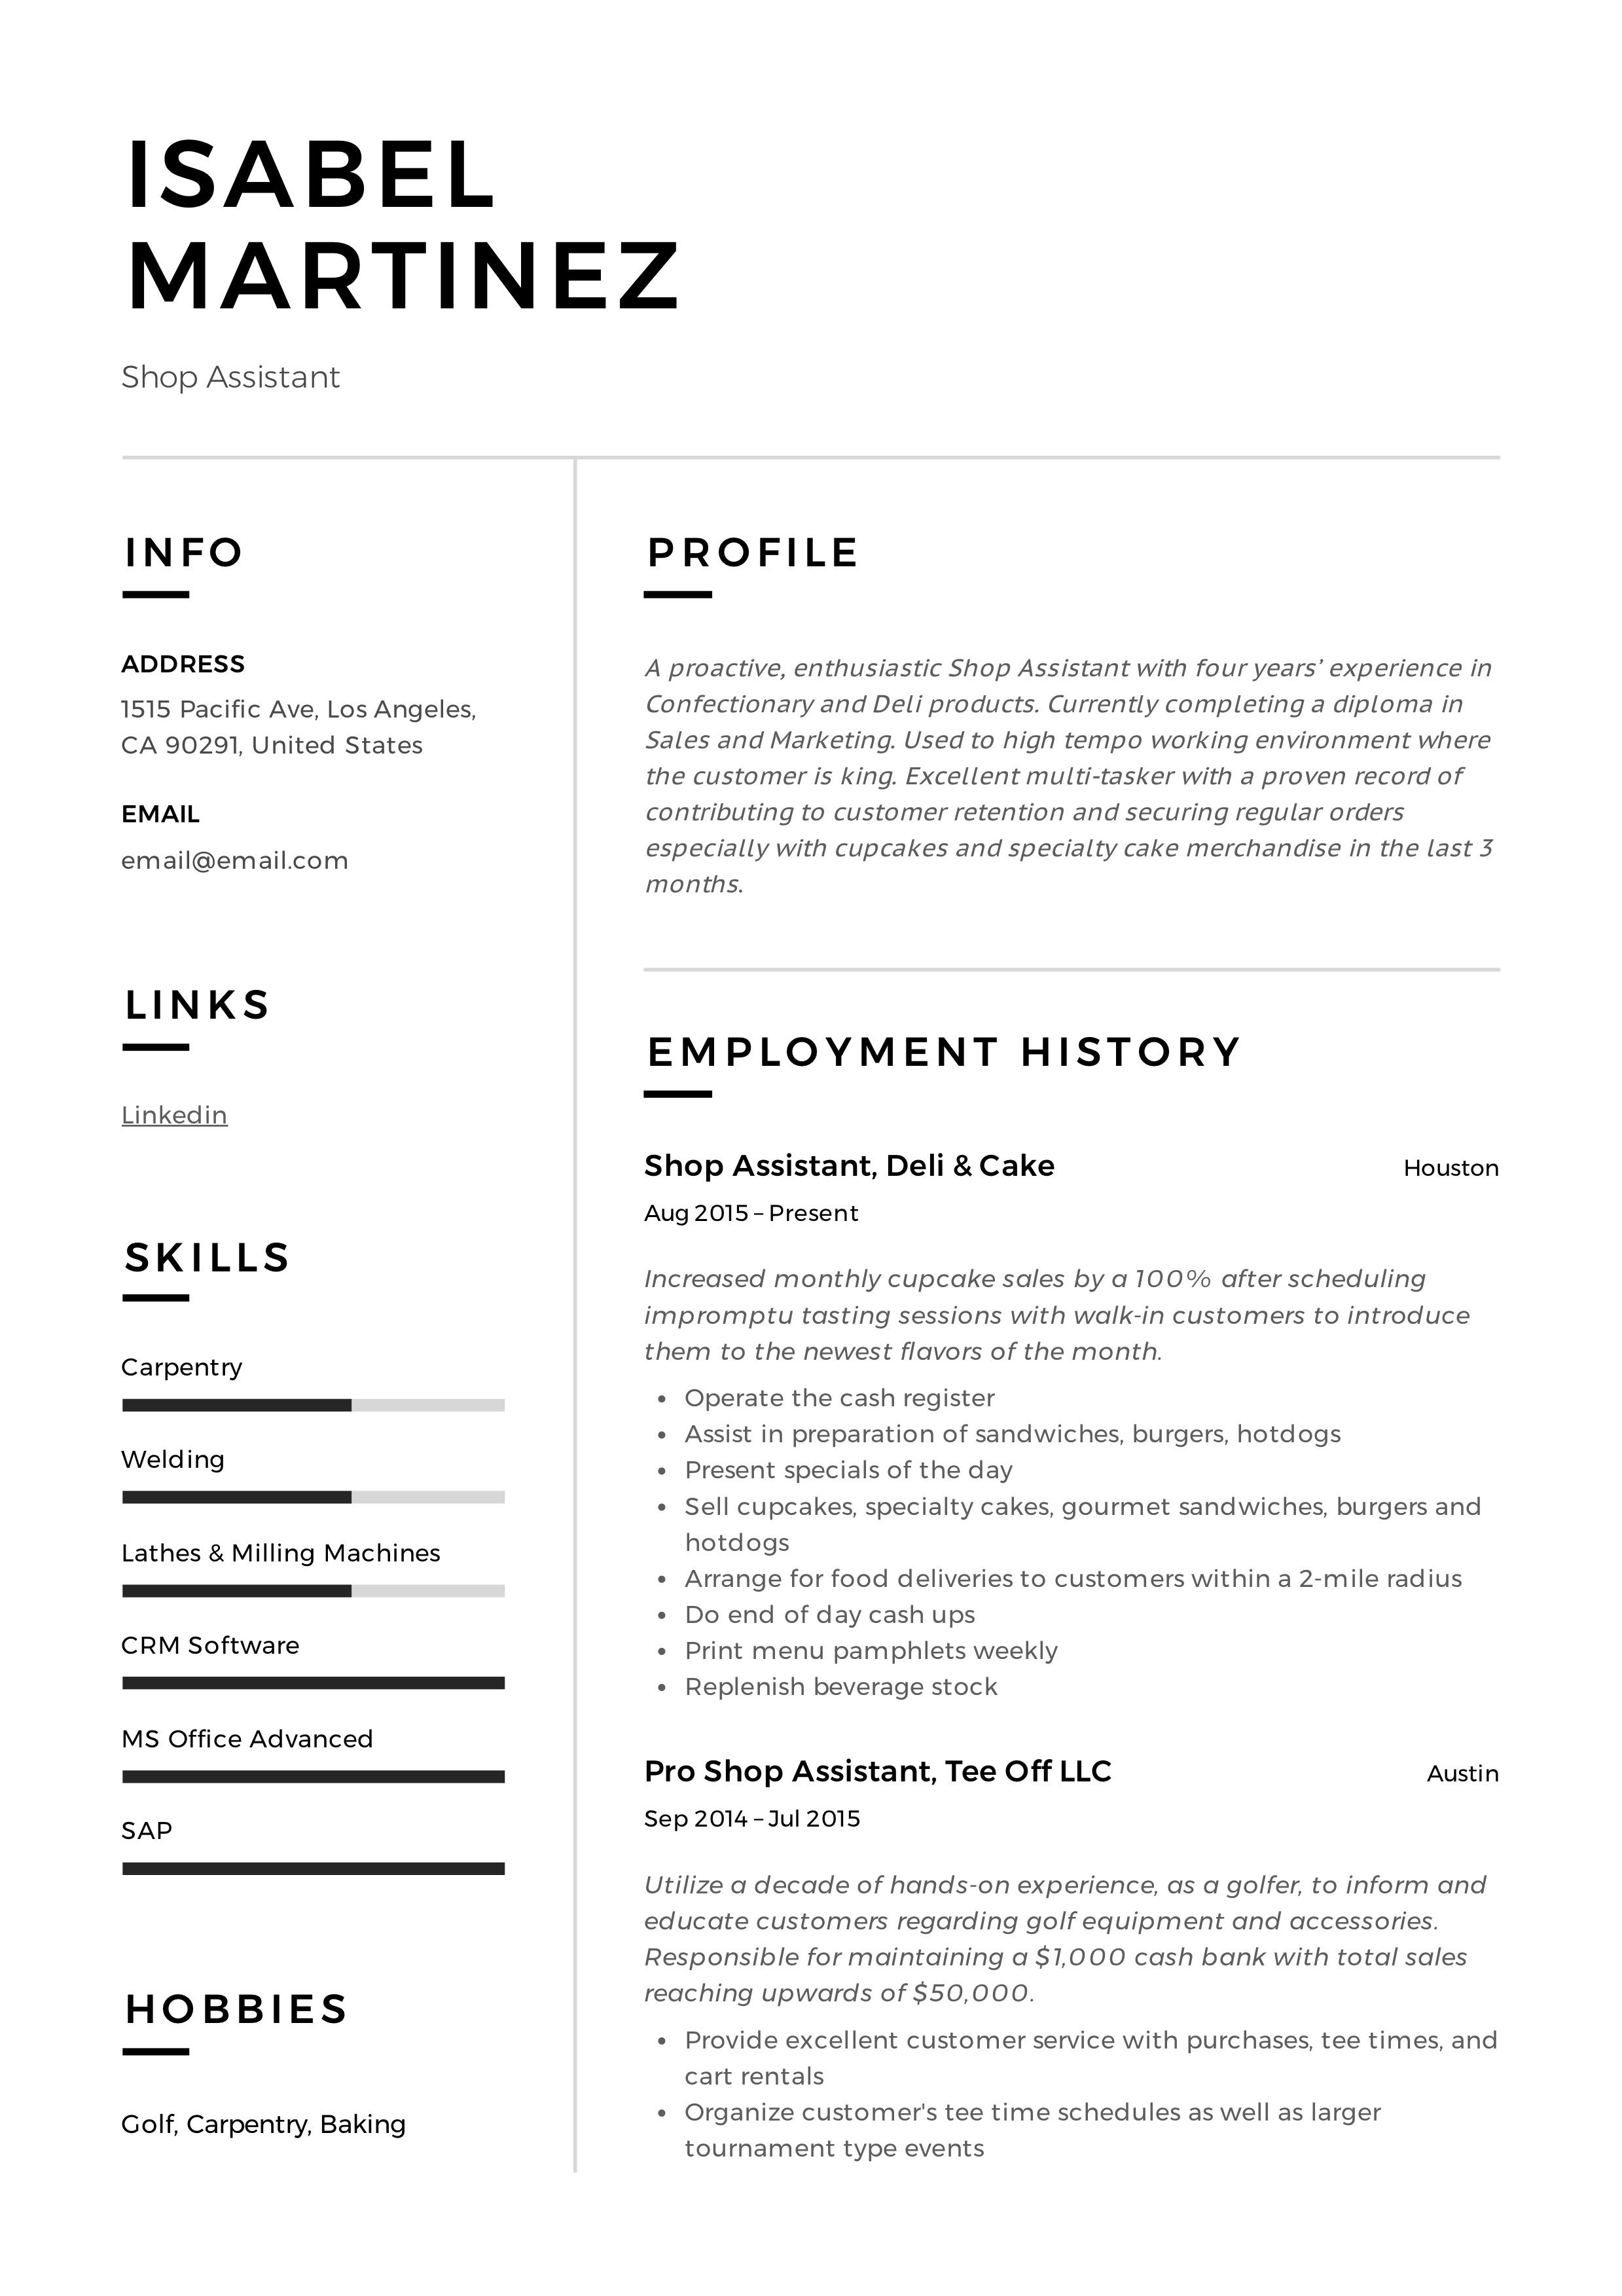 Professional Shop assistant Resume, template, design, tips